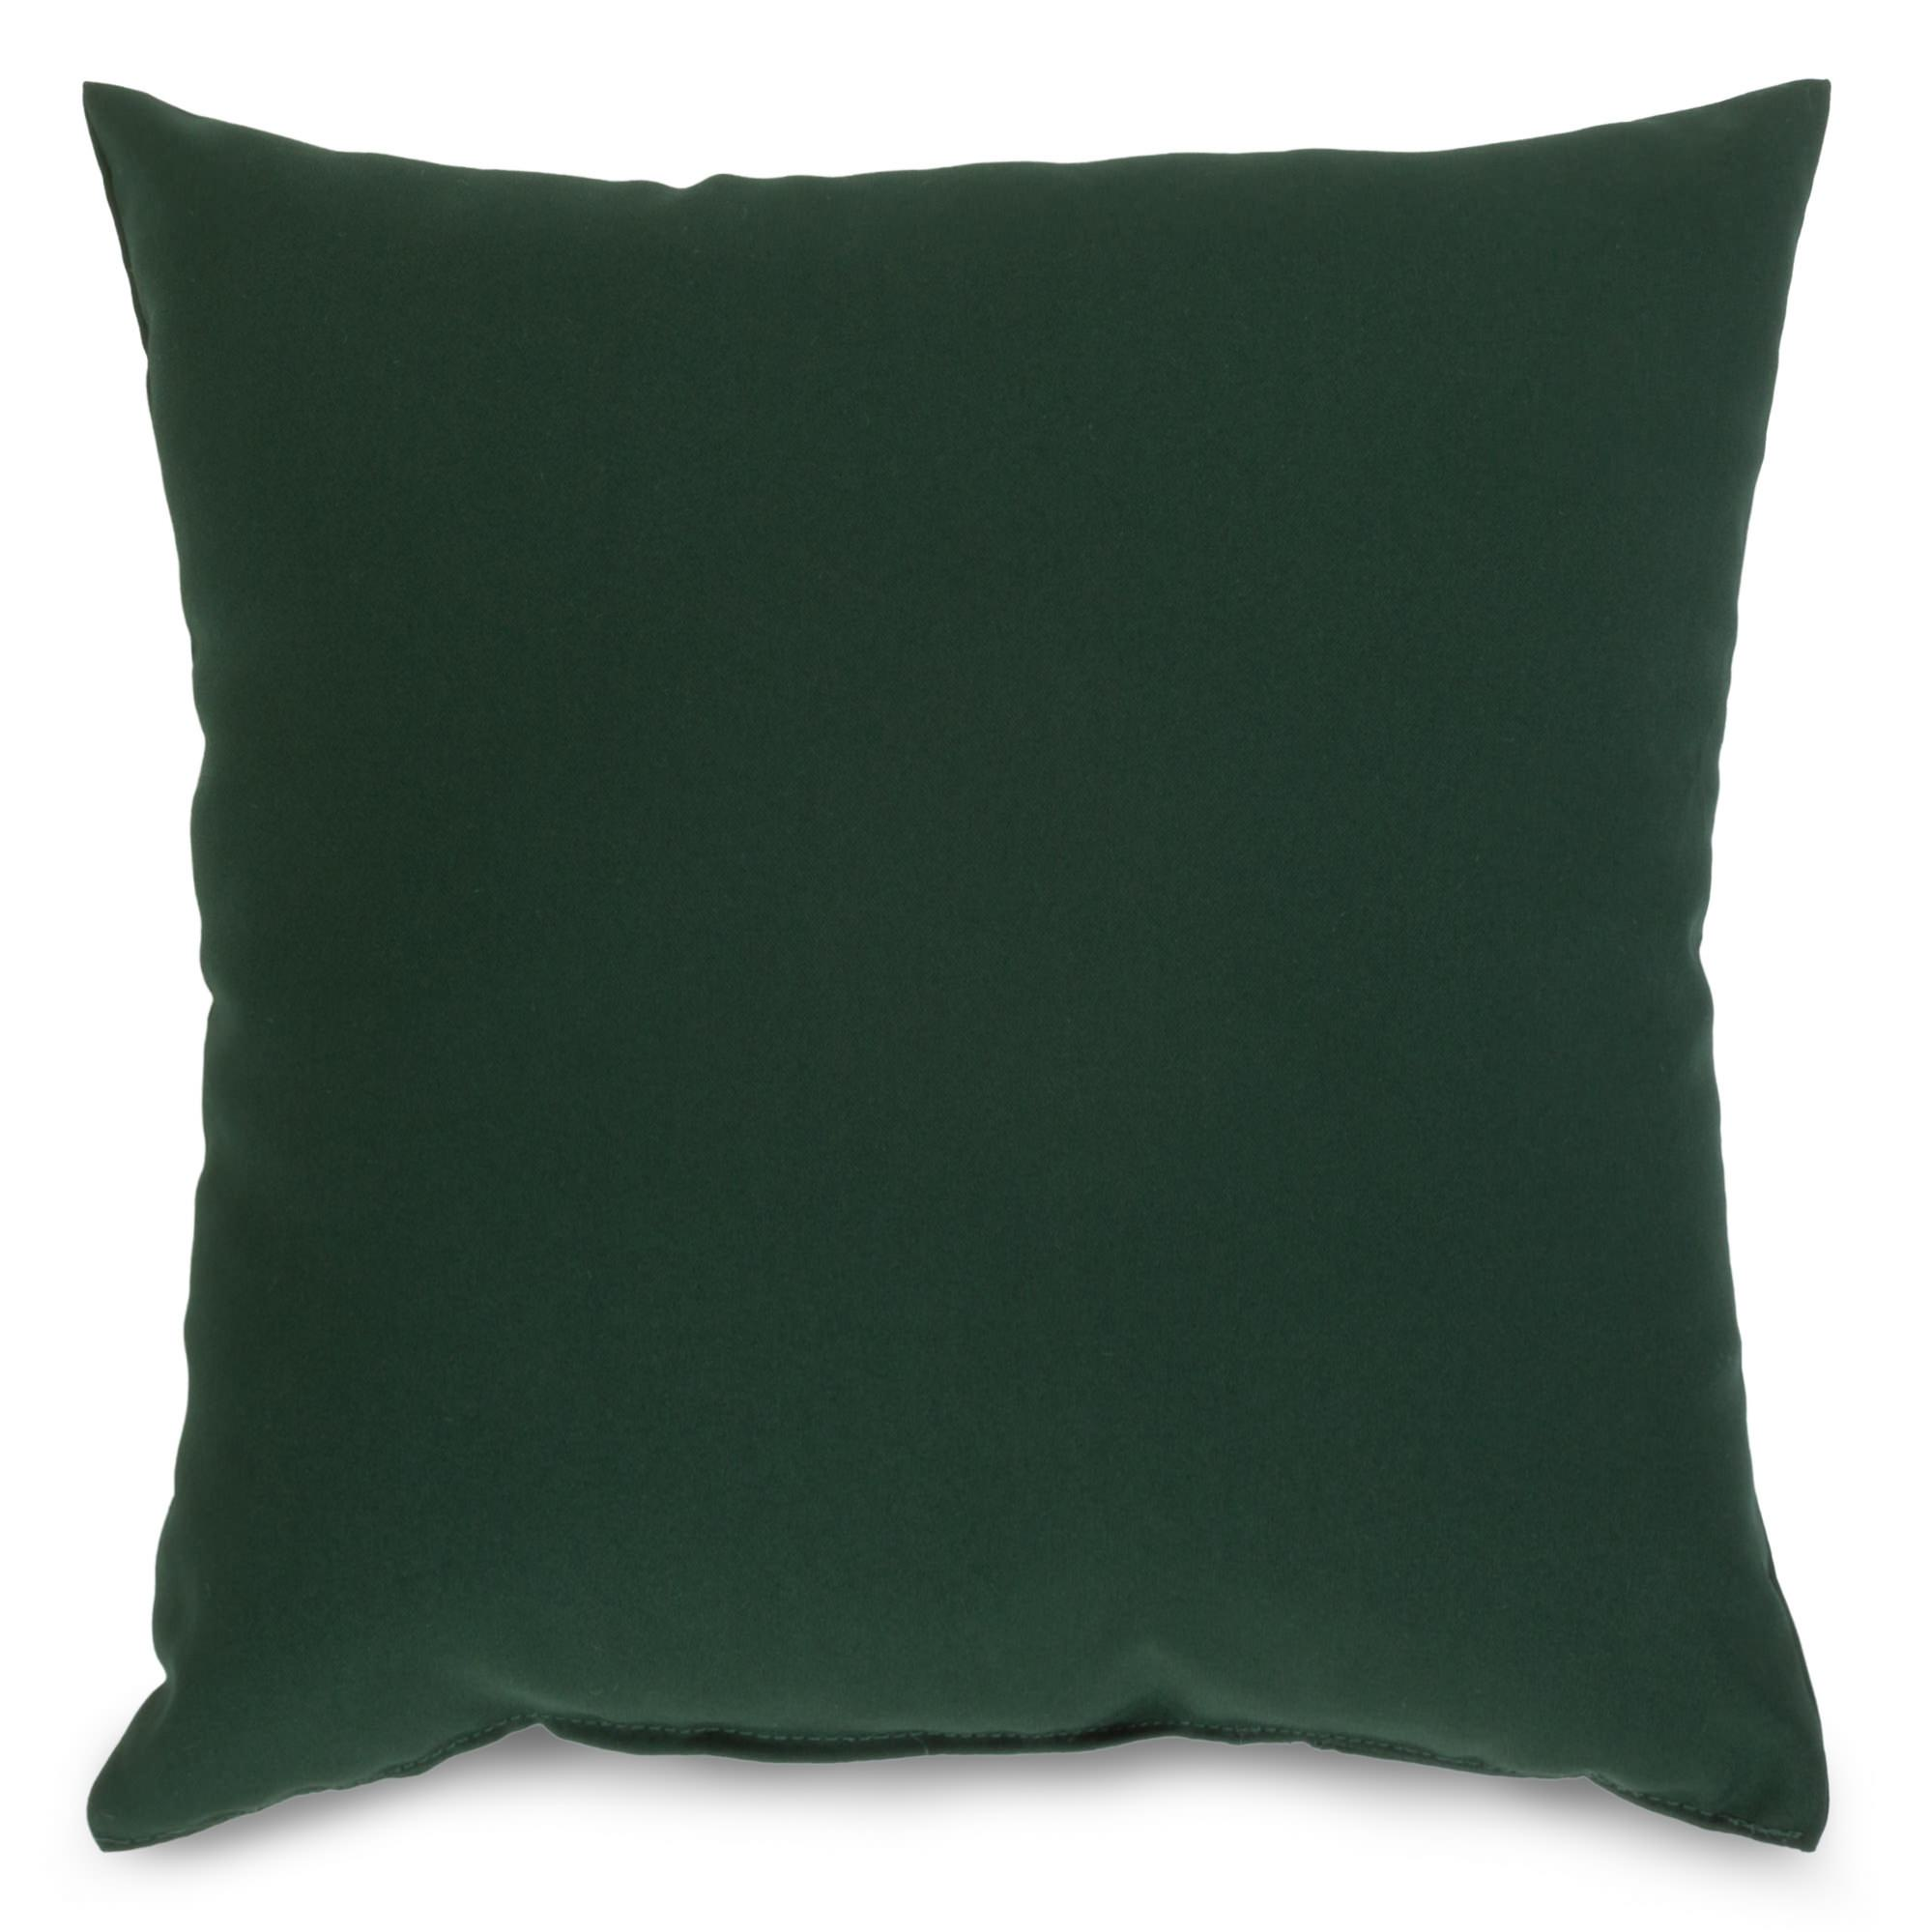 Green Outdoor Throw Pillow BSQIGR-K DFOHome